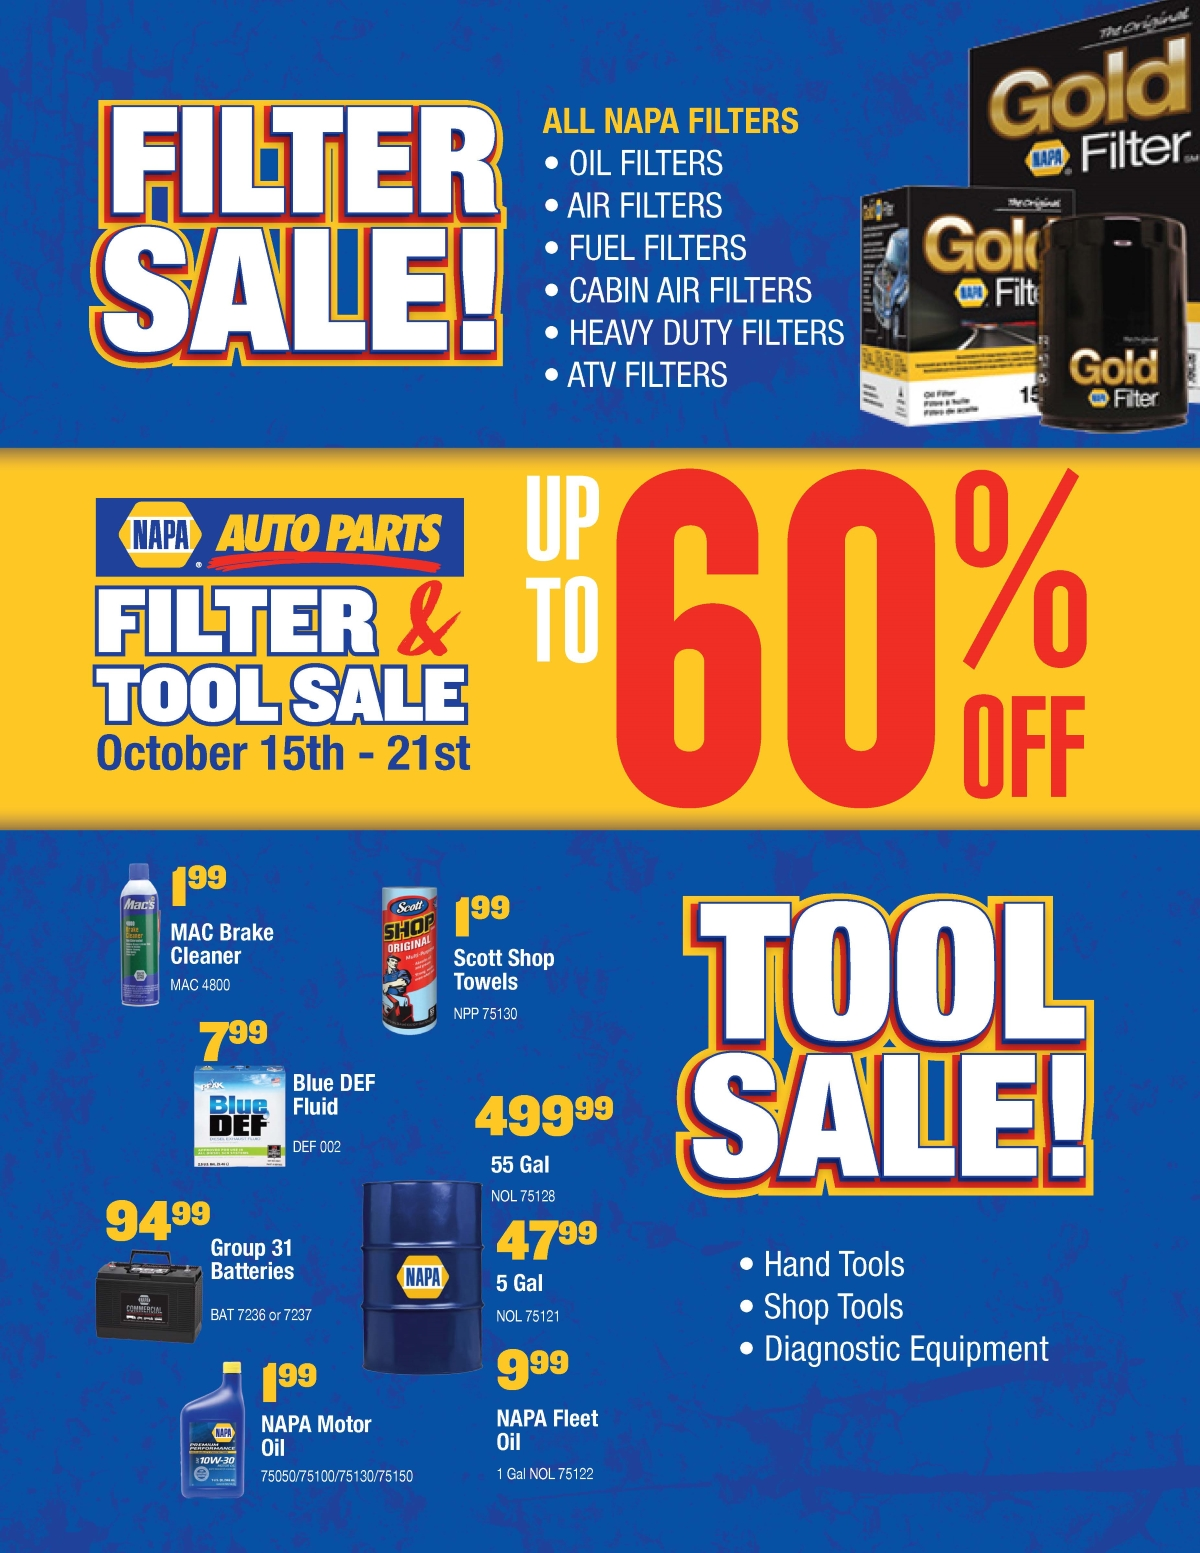 Auto Parts For Sale >> Napa Auto Parts Filter And Tool Sale October 15th To 21st